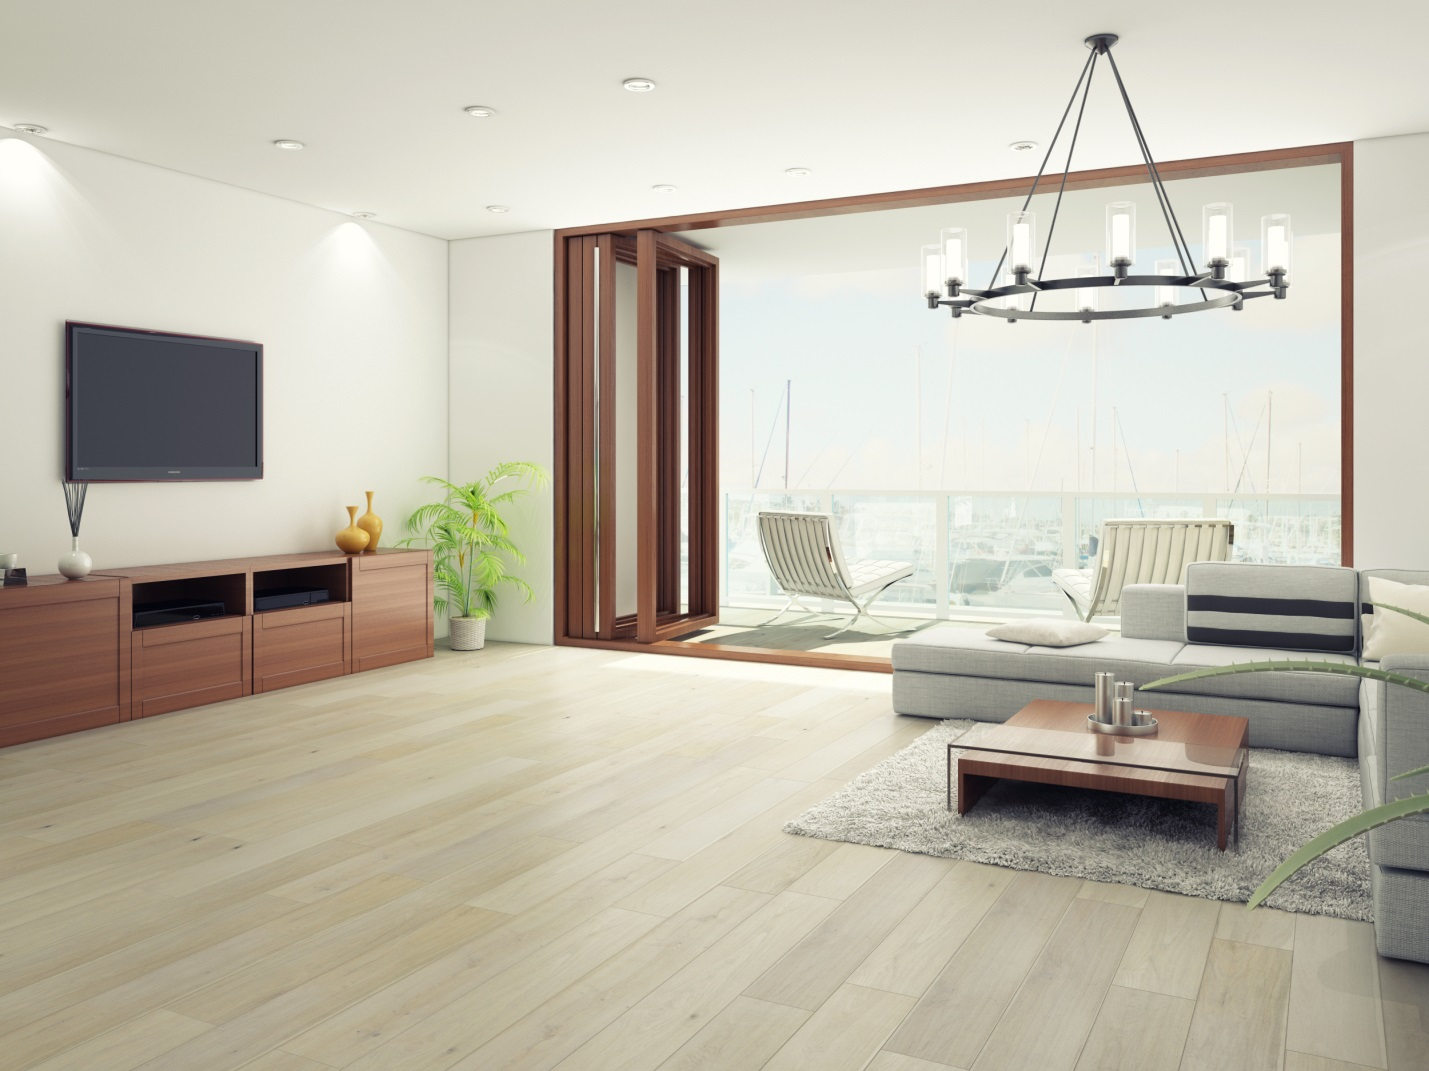 How To Properly Maintain Your Hardwood Floors - Bruzzese Home ...